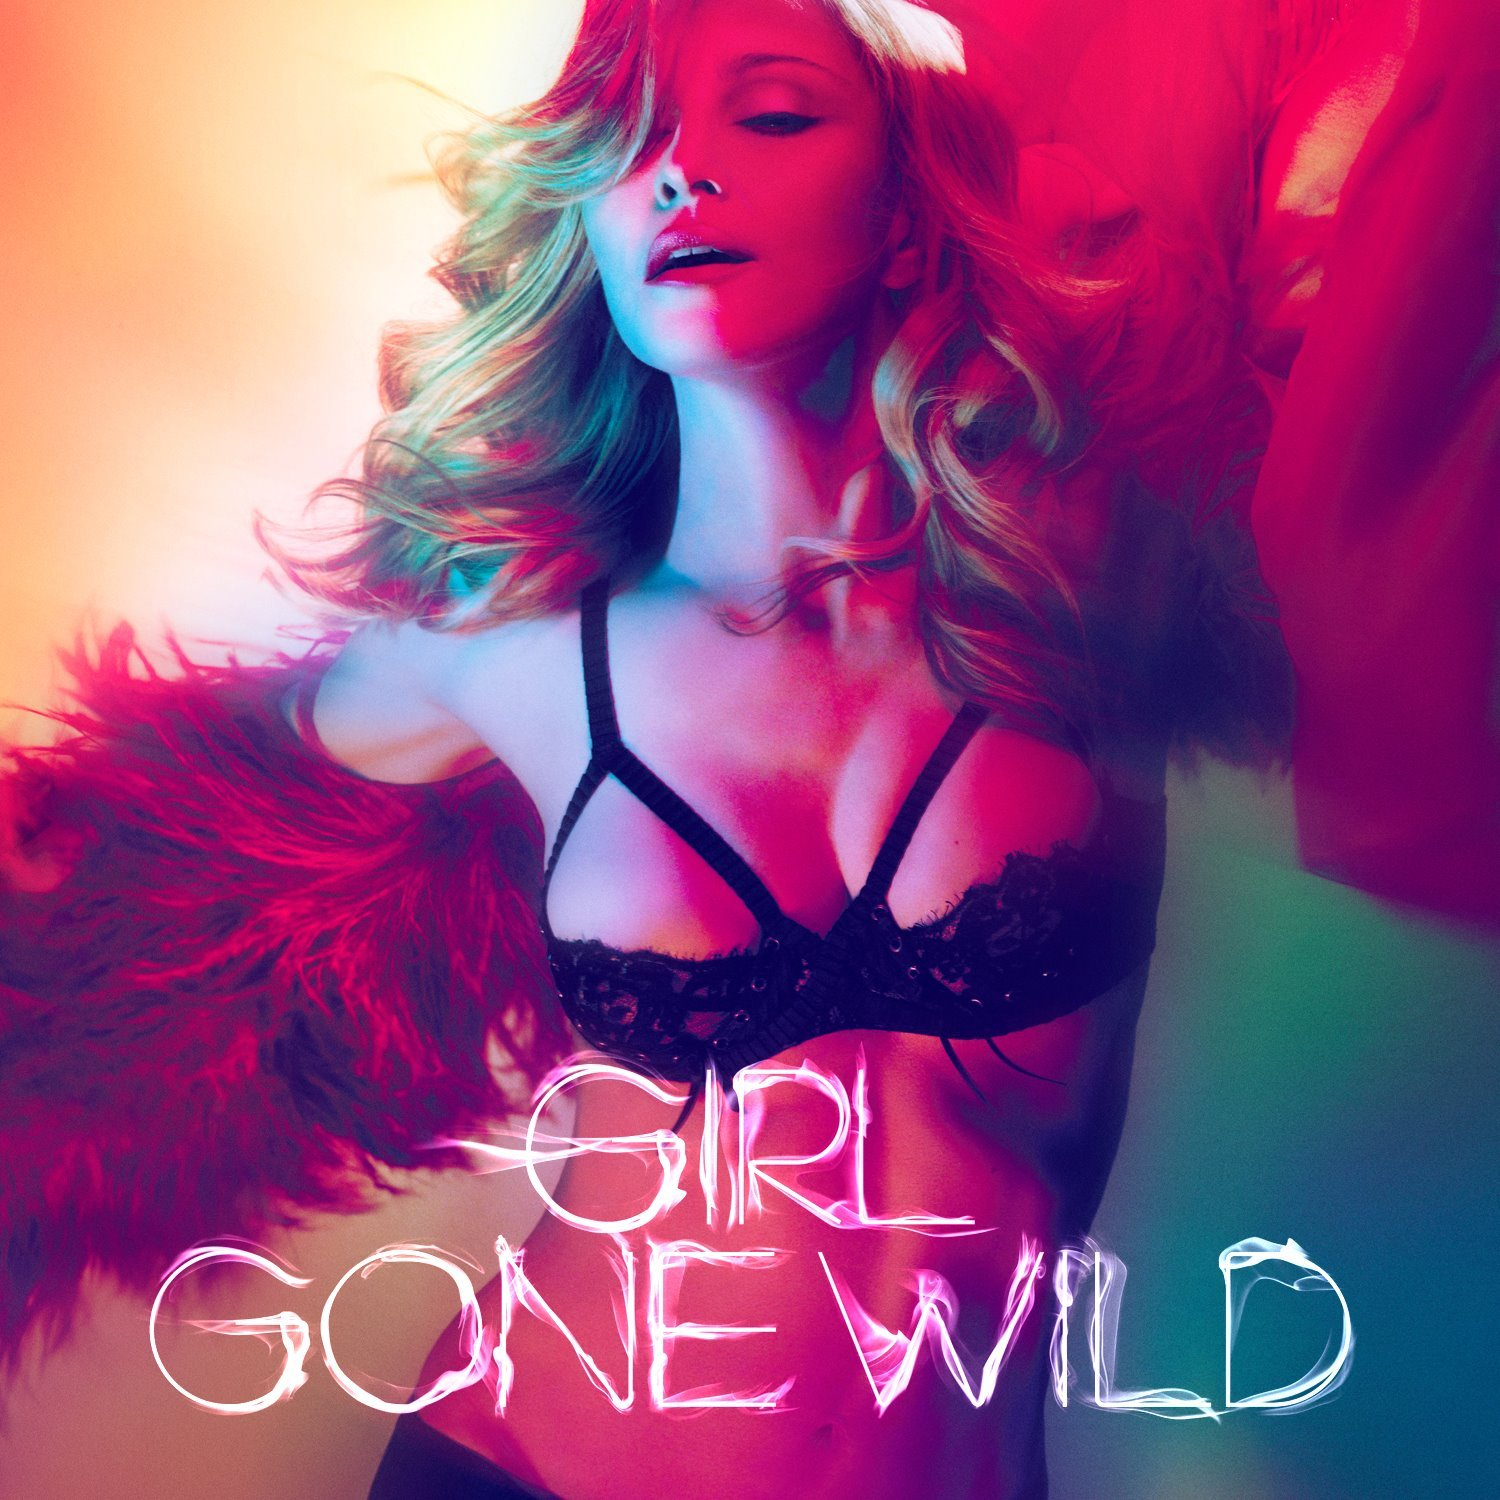 20120228-pictures-madonna-girl-gone-wild-cover-hq.jpg